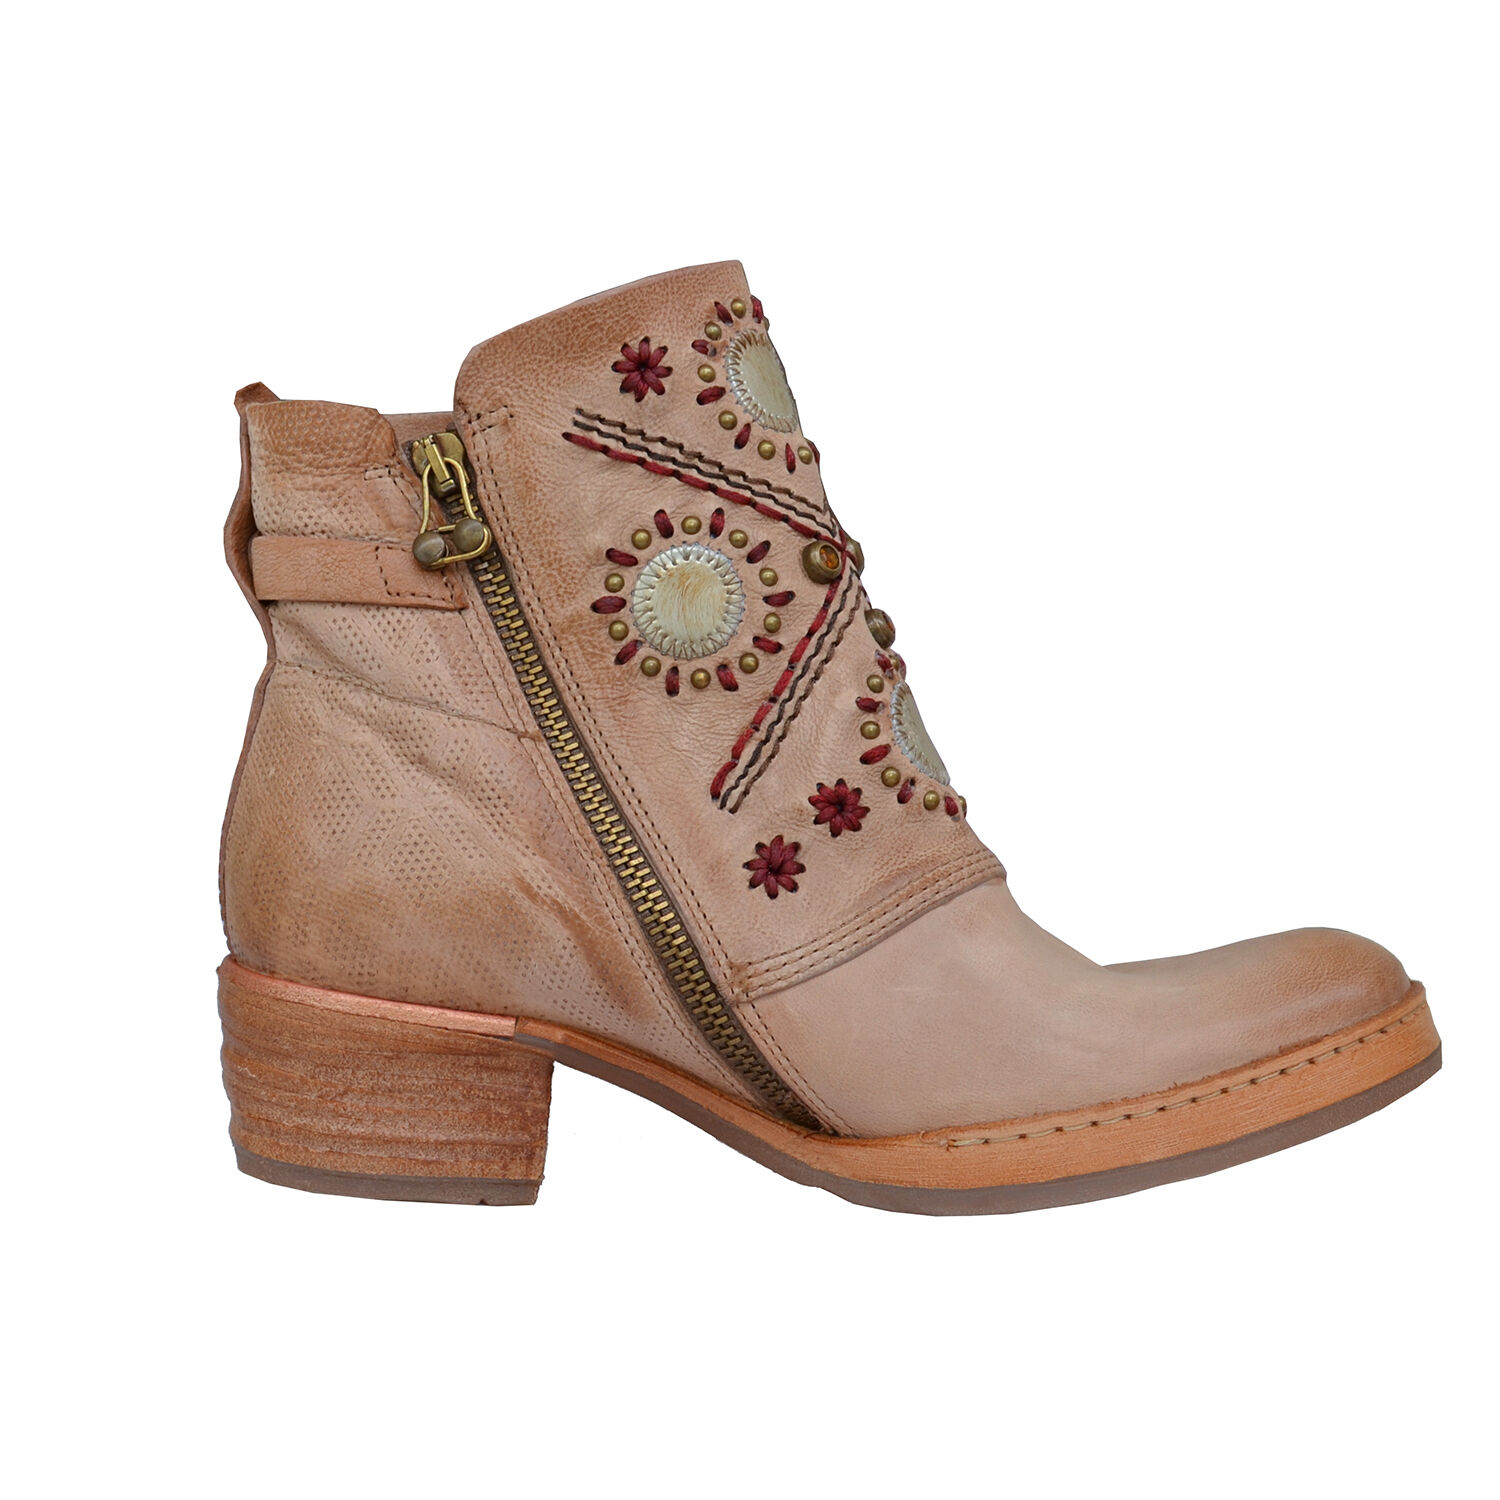 A.s.98 Airstep donna Bootie Vintage Stivaletti in pelle€ 199,00 nuovo e riduce